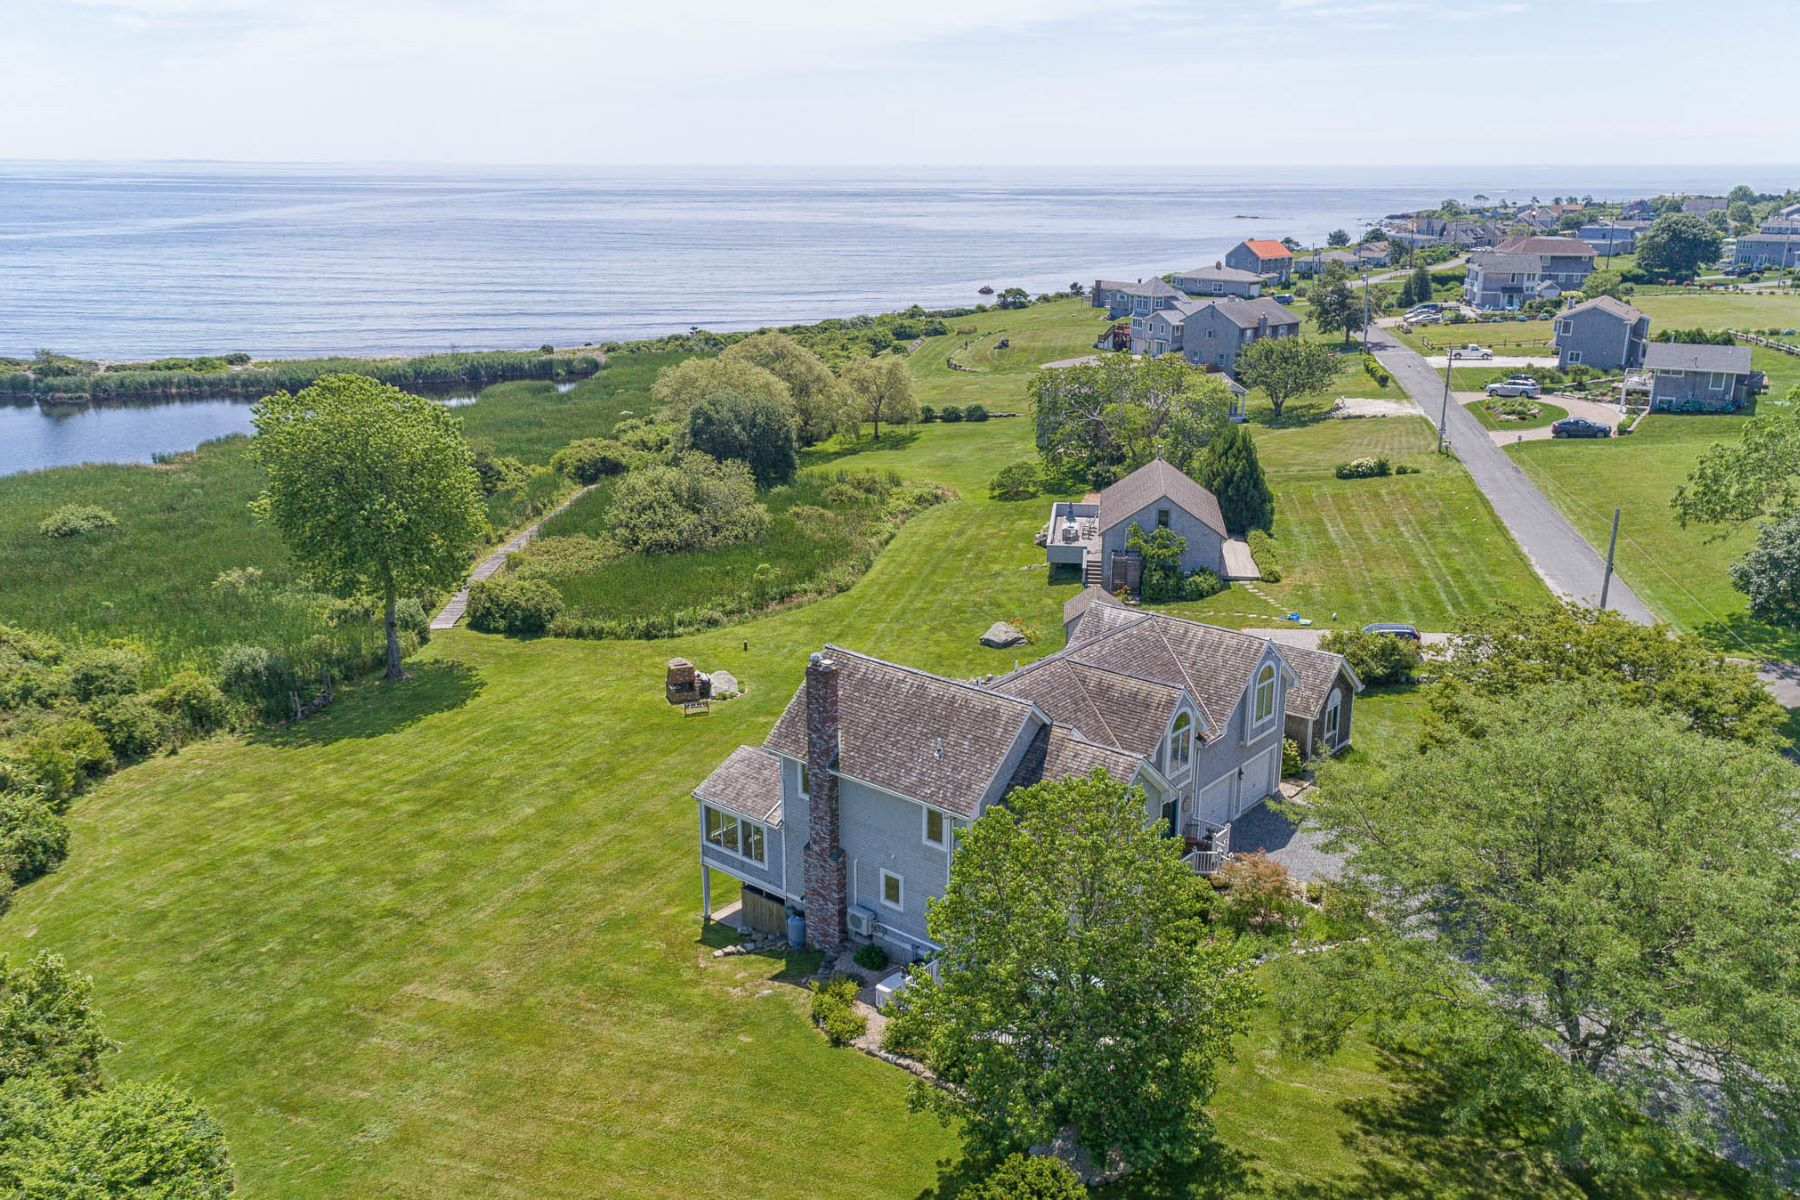 Single Family Homes for Sale at 6 Ocean Drive, Little Compton, RI 6 Ocean Drive Little Compton, Rhode Island 02837 United States